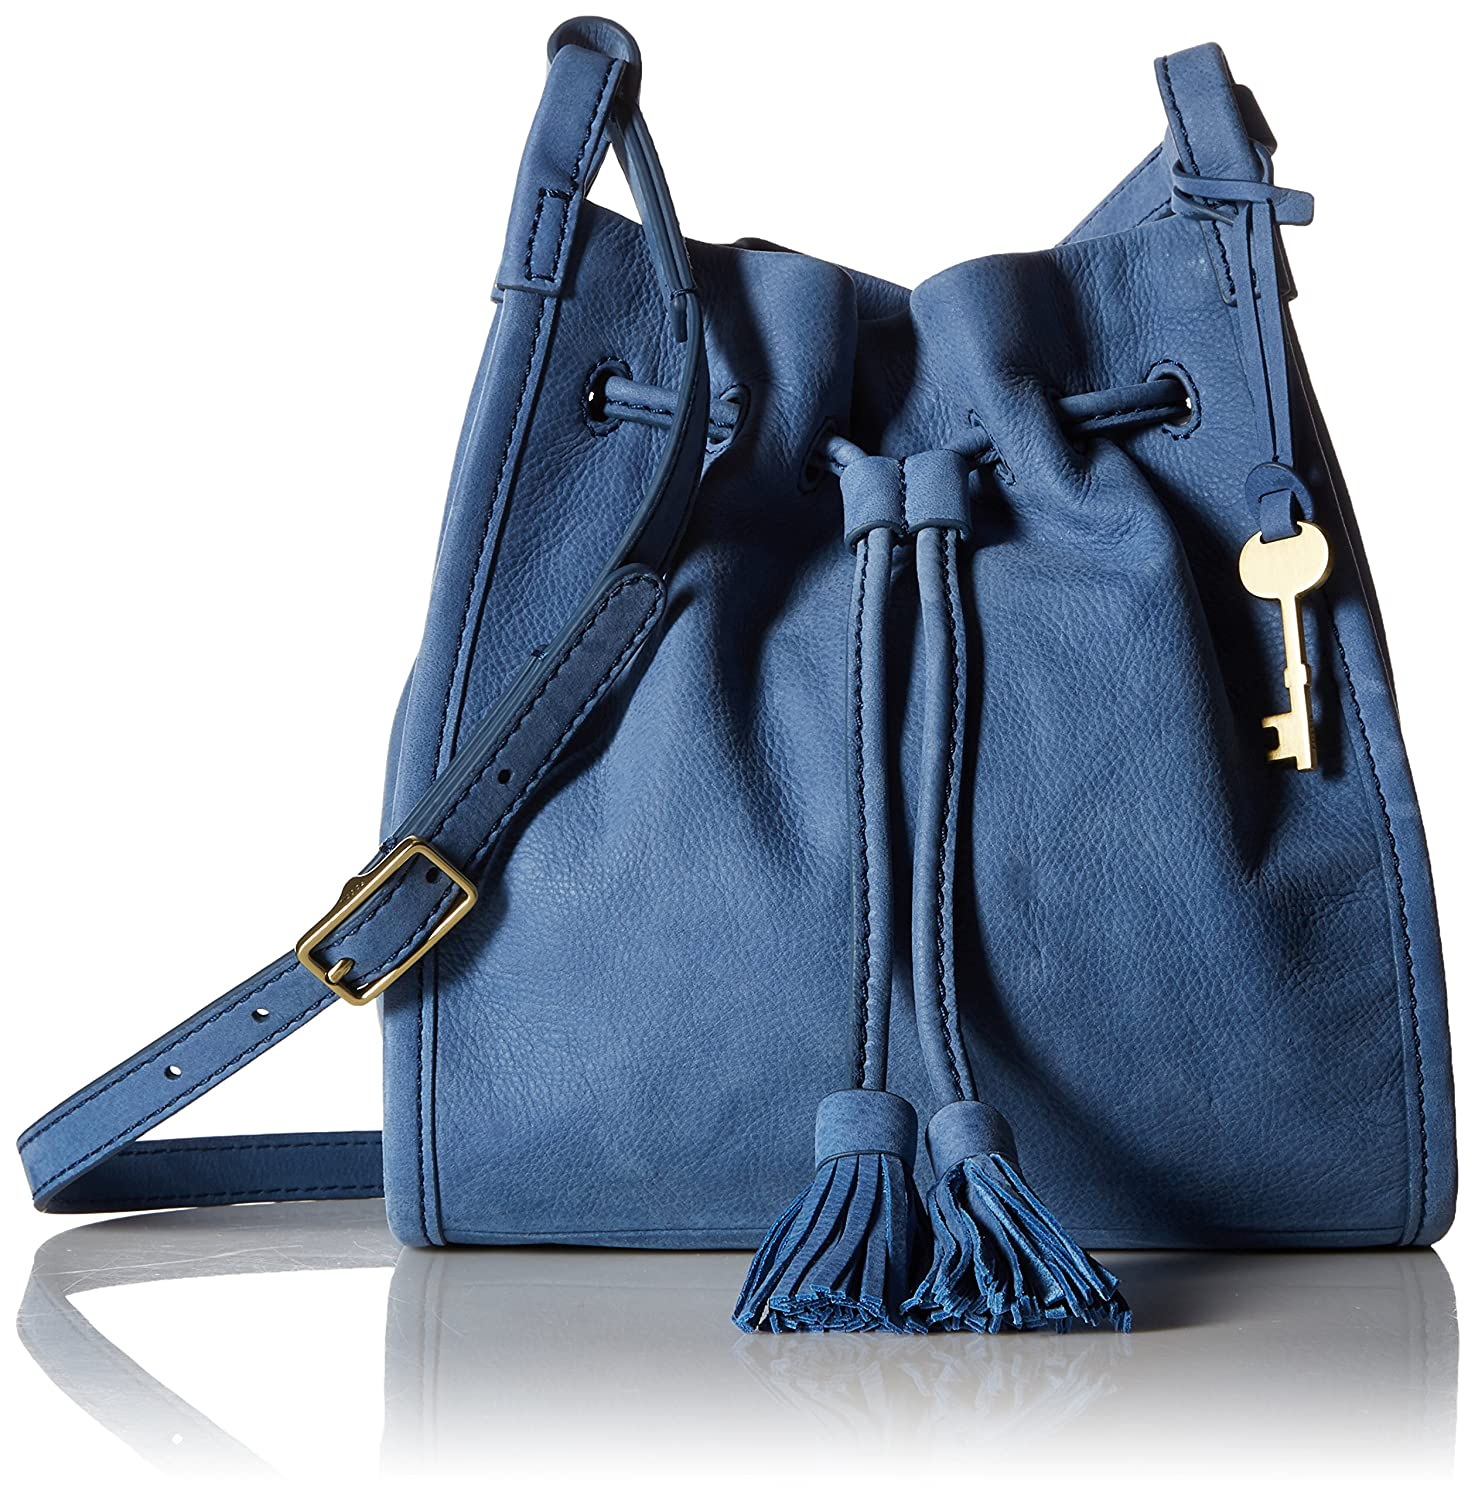 Fossil Drawstring Handbags Tessa Satchel Blue Claire Small Bag Cornflower 1475x1500